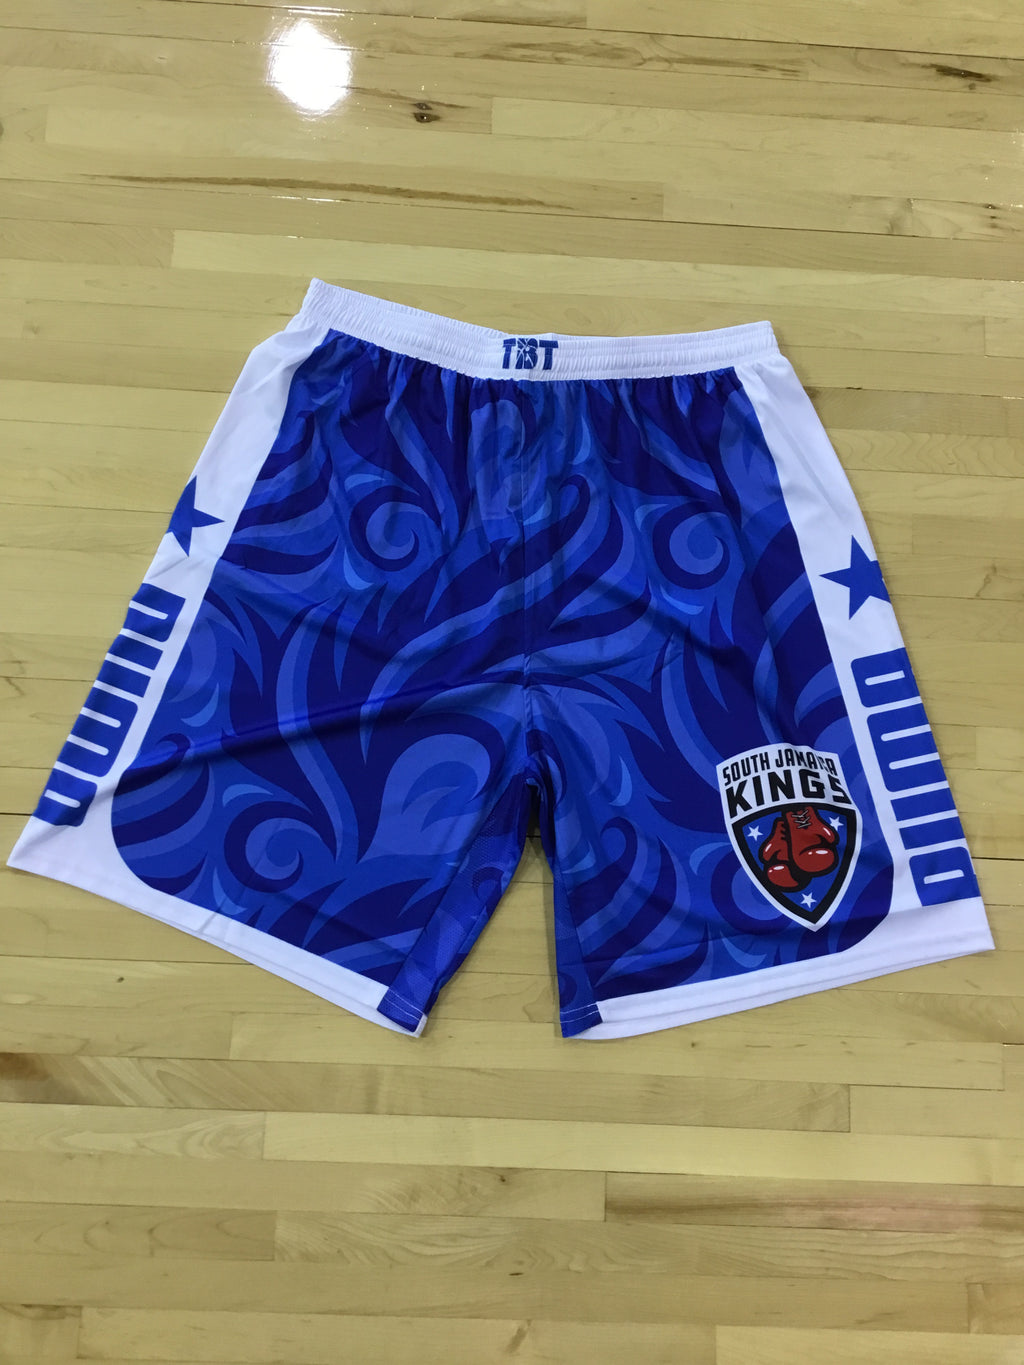 South Jamaica Kings - 2018 Official Team Shorts